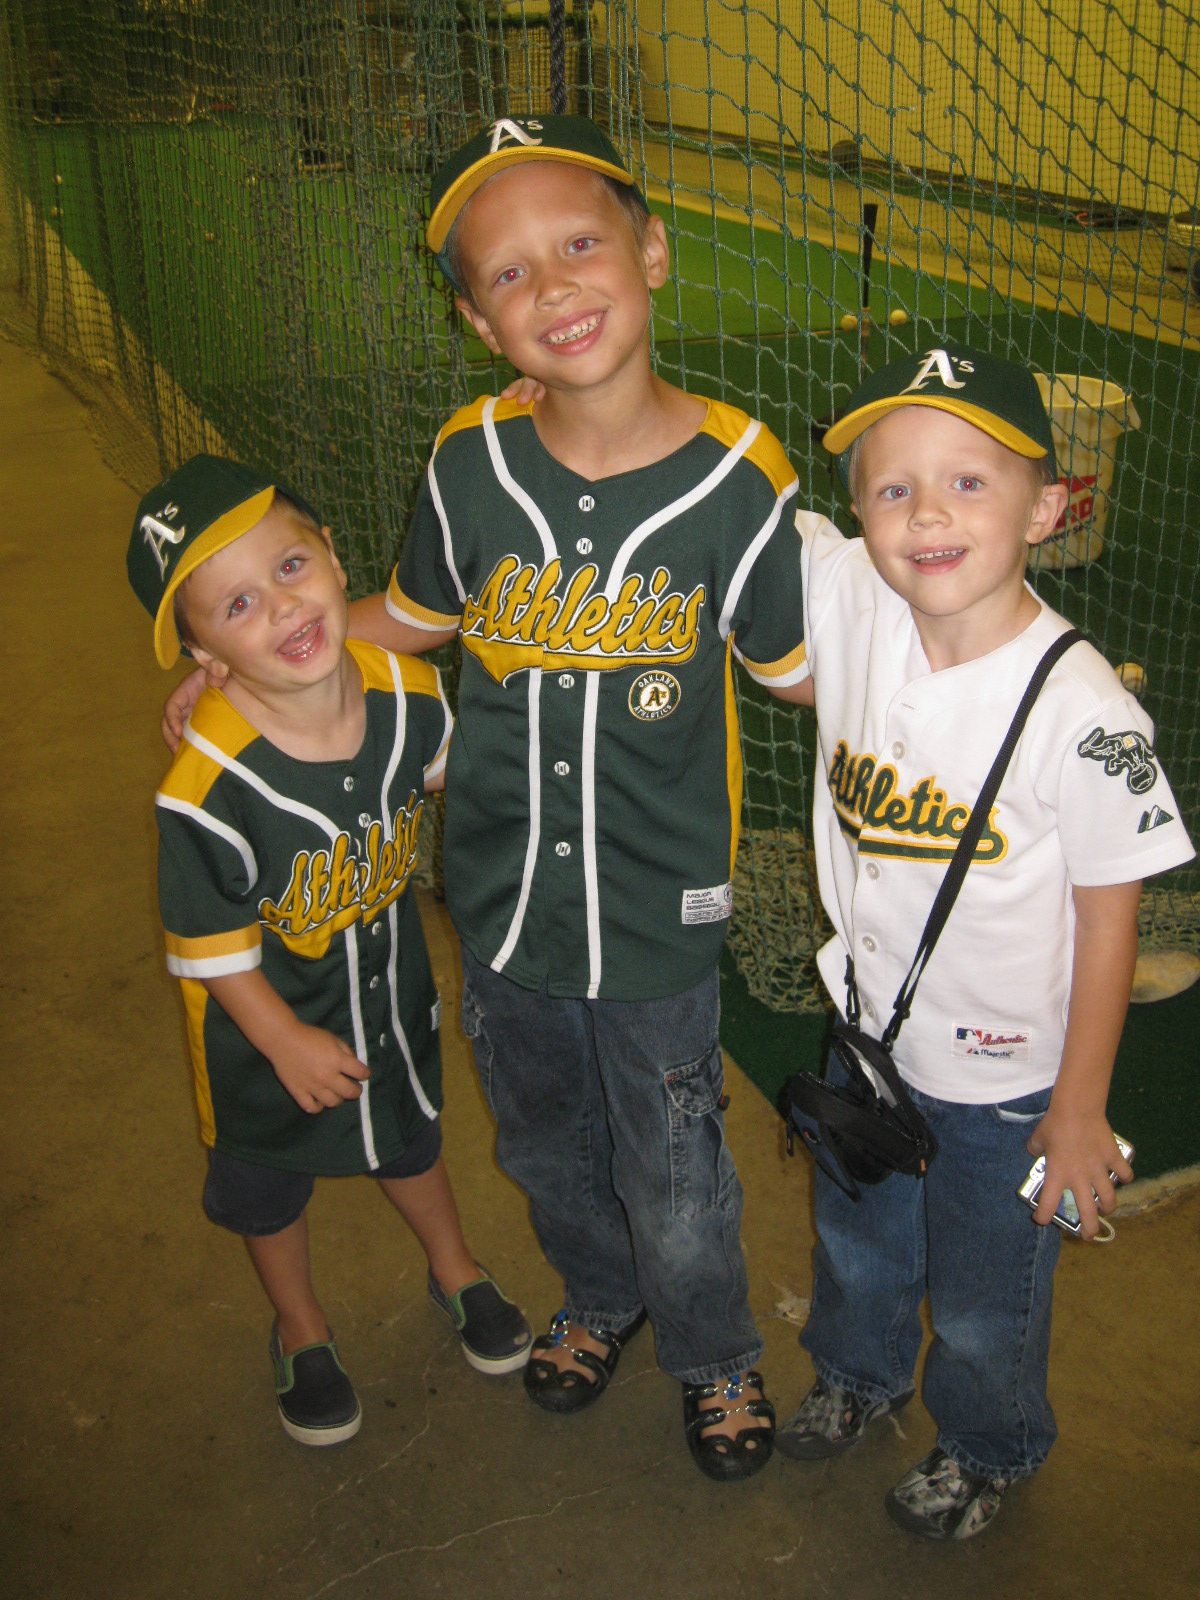 three boys in A's gear posed in front of cages